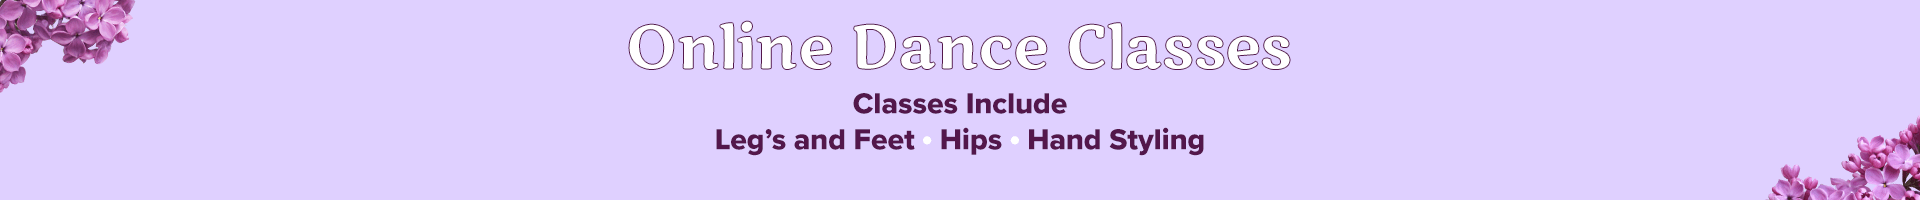 Online Dance Lessons with Elena Grinenko